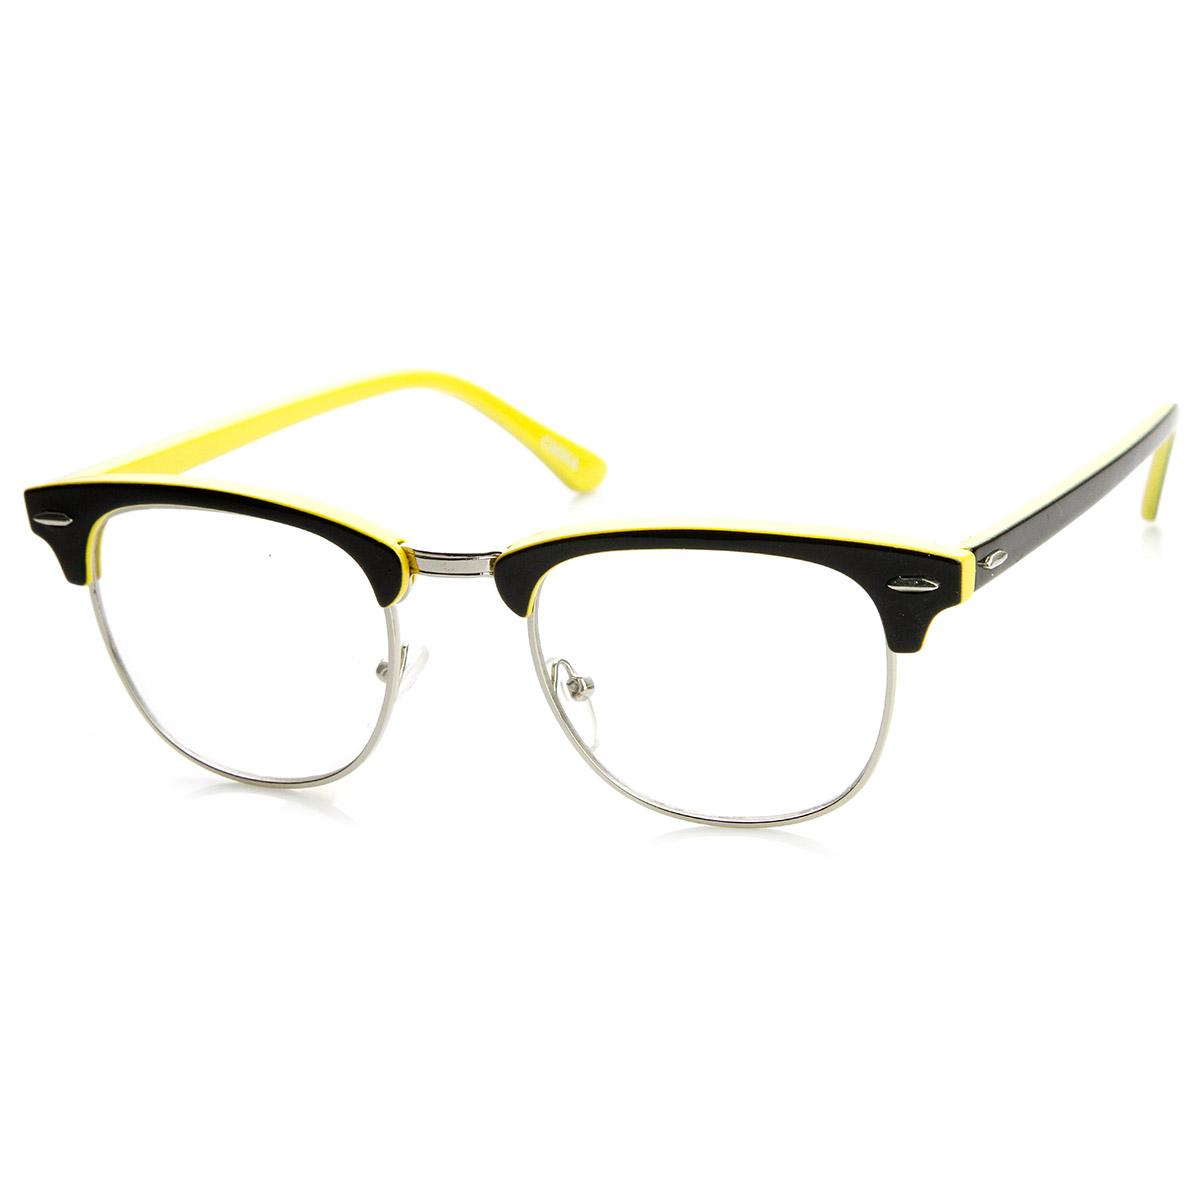 Two-Tone Colorful Half Frame Clear Lens Horn Rimmed ...